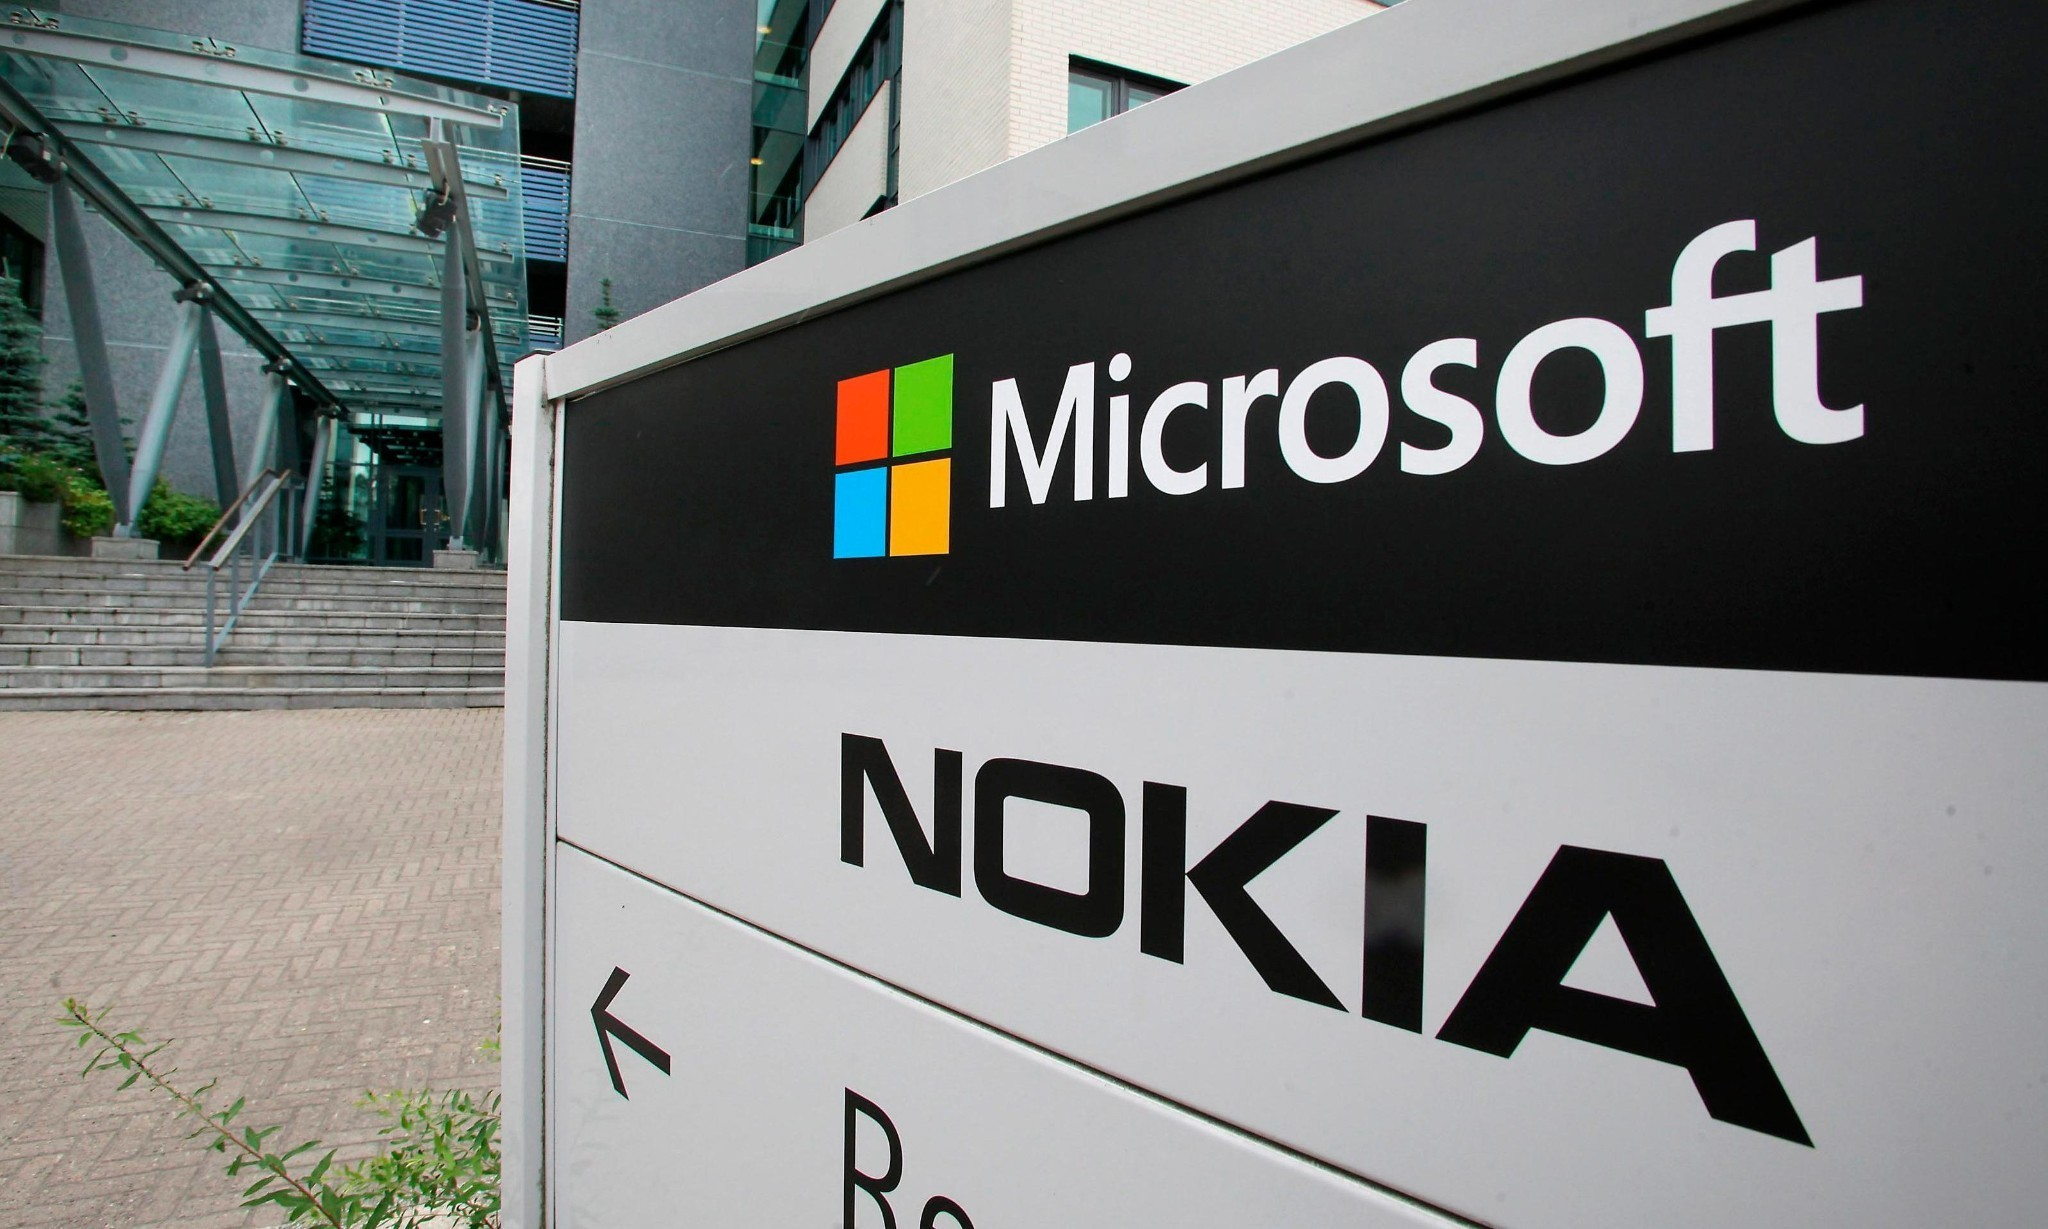 Microsoft to cut 1,850 jobs at struggling former Nokia smartphone unit